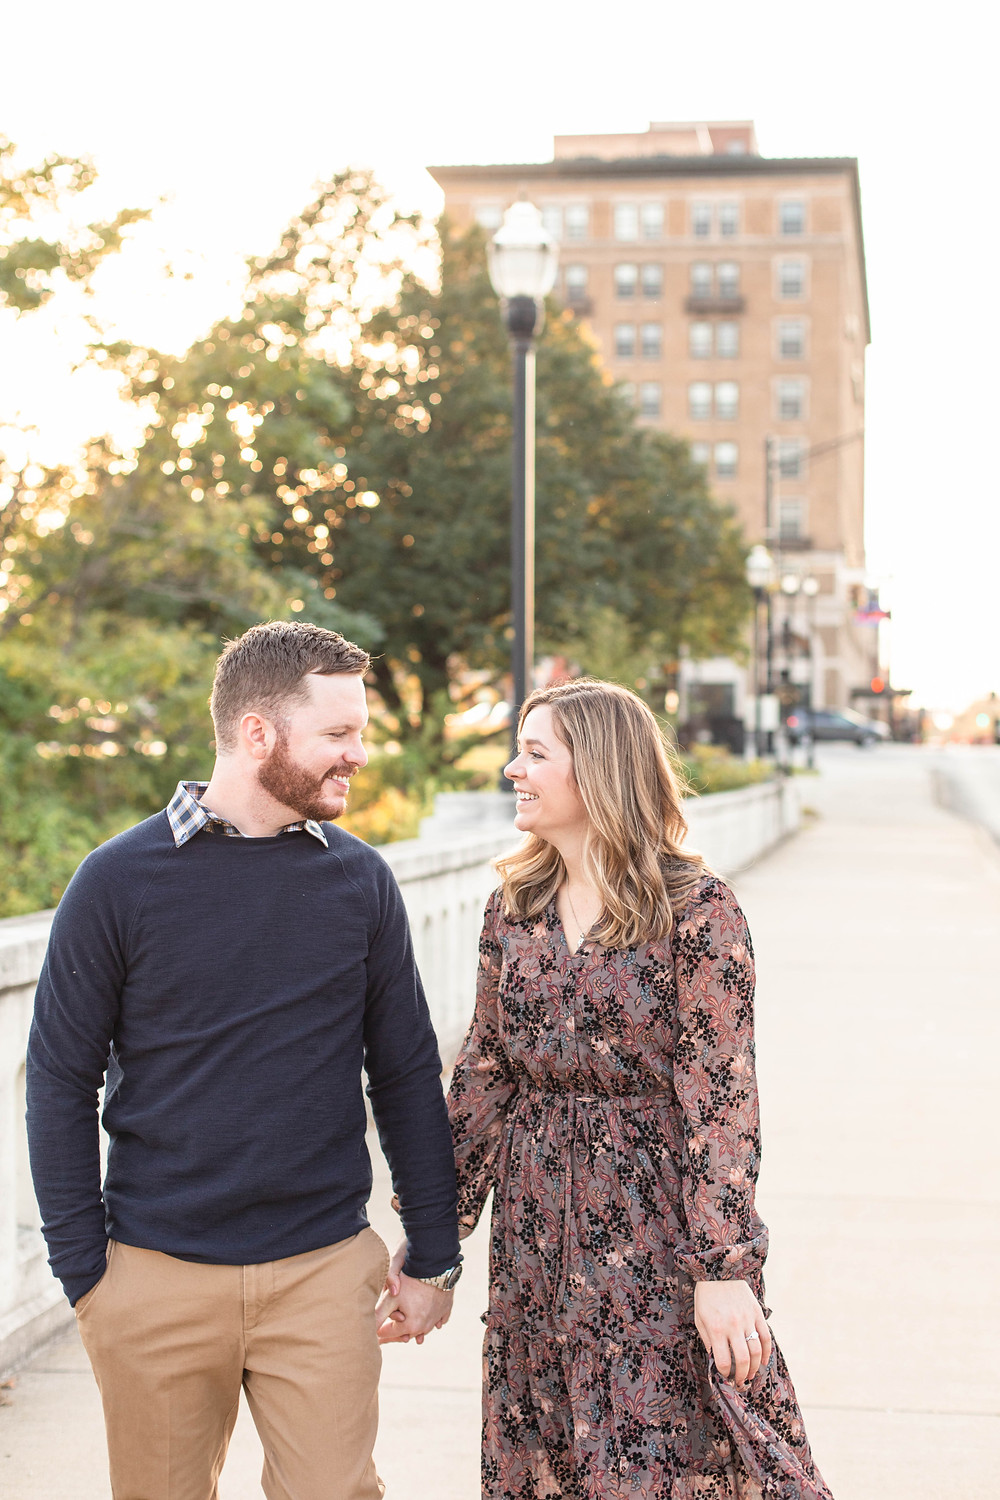 Josh and Andrea photography engagement photos south bend Indiana cute couple smiling walking